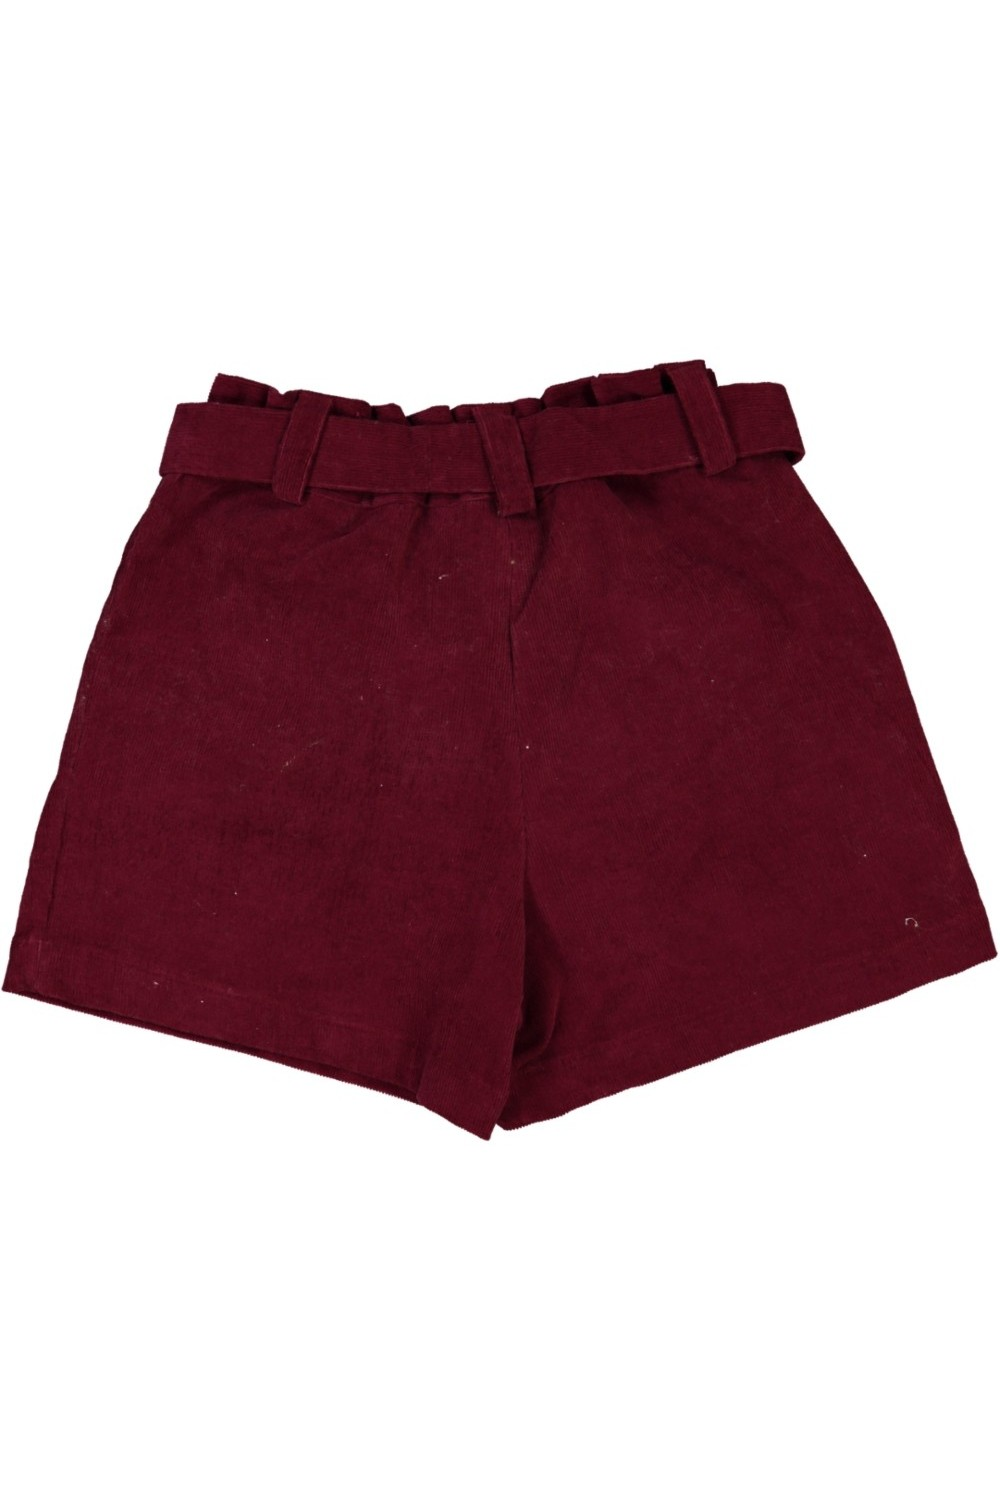 short fille velours marron aster risu risu